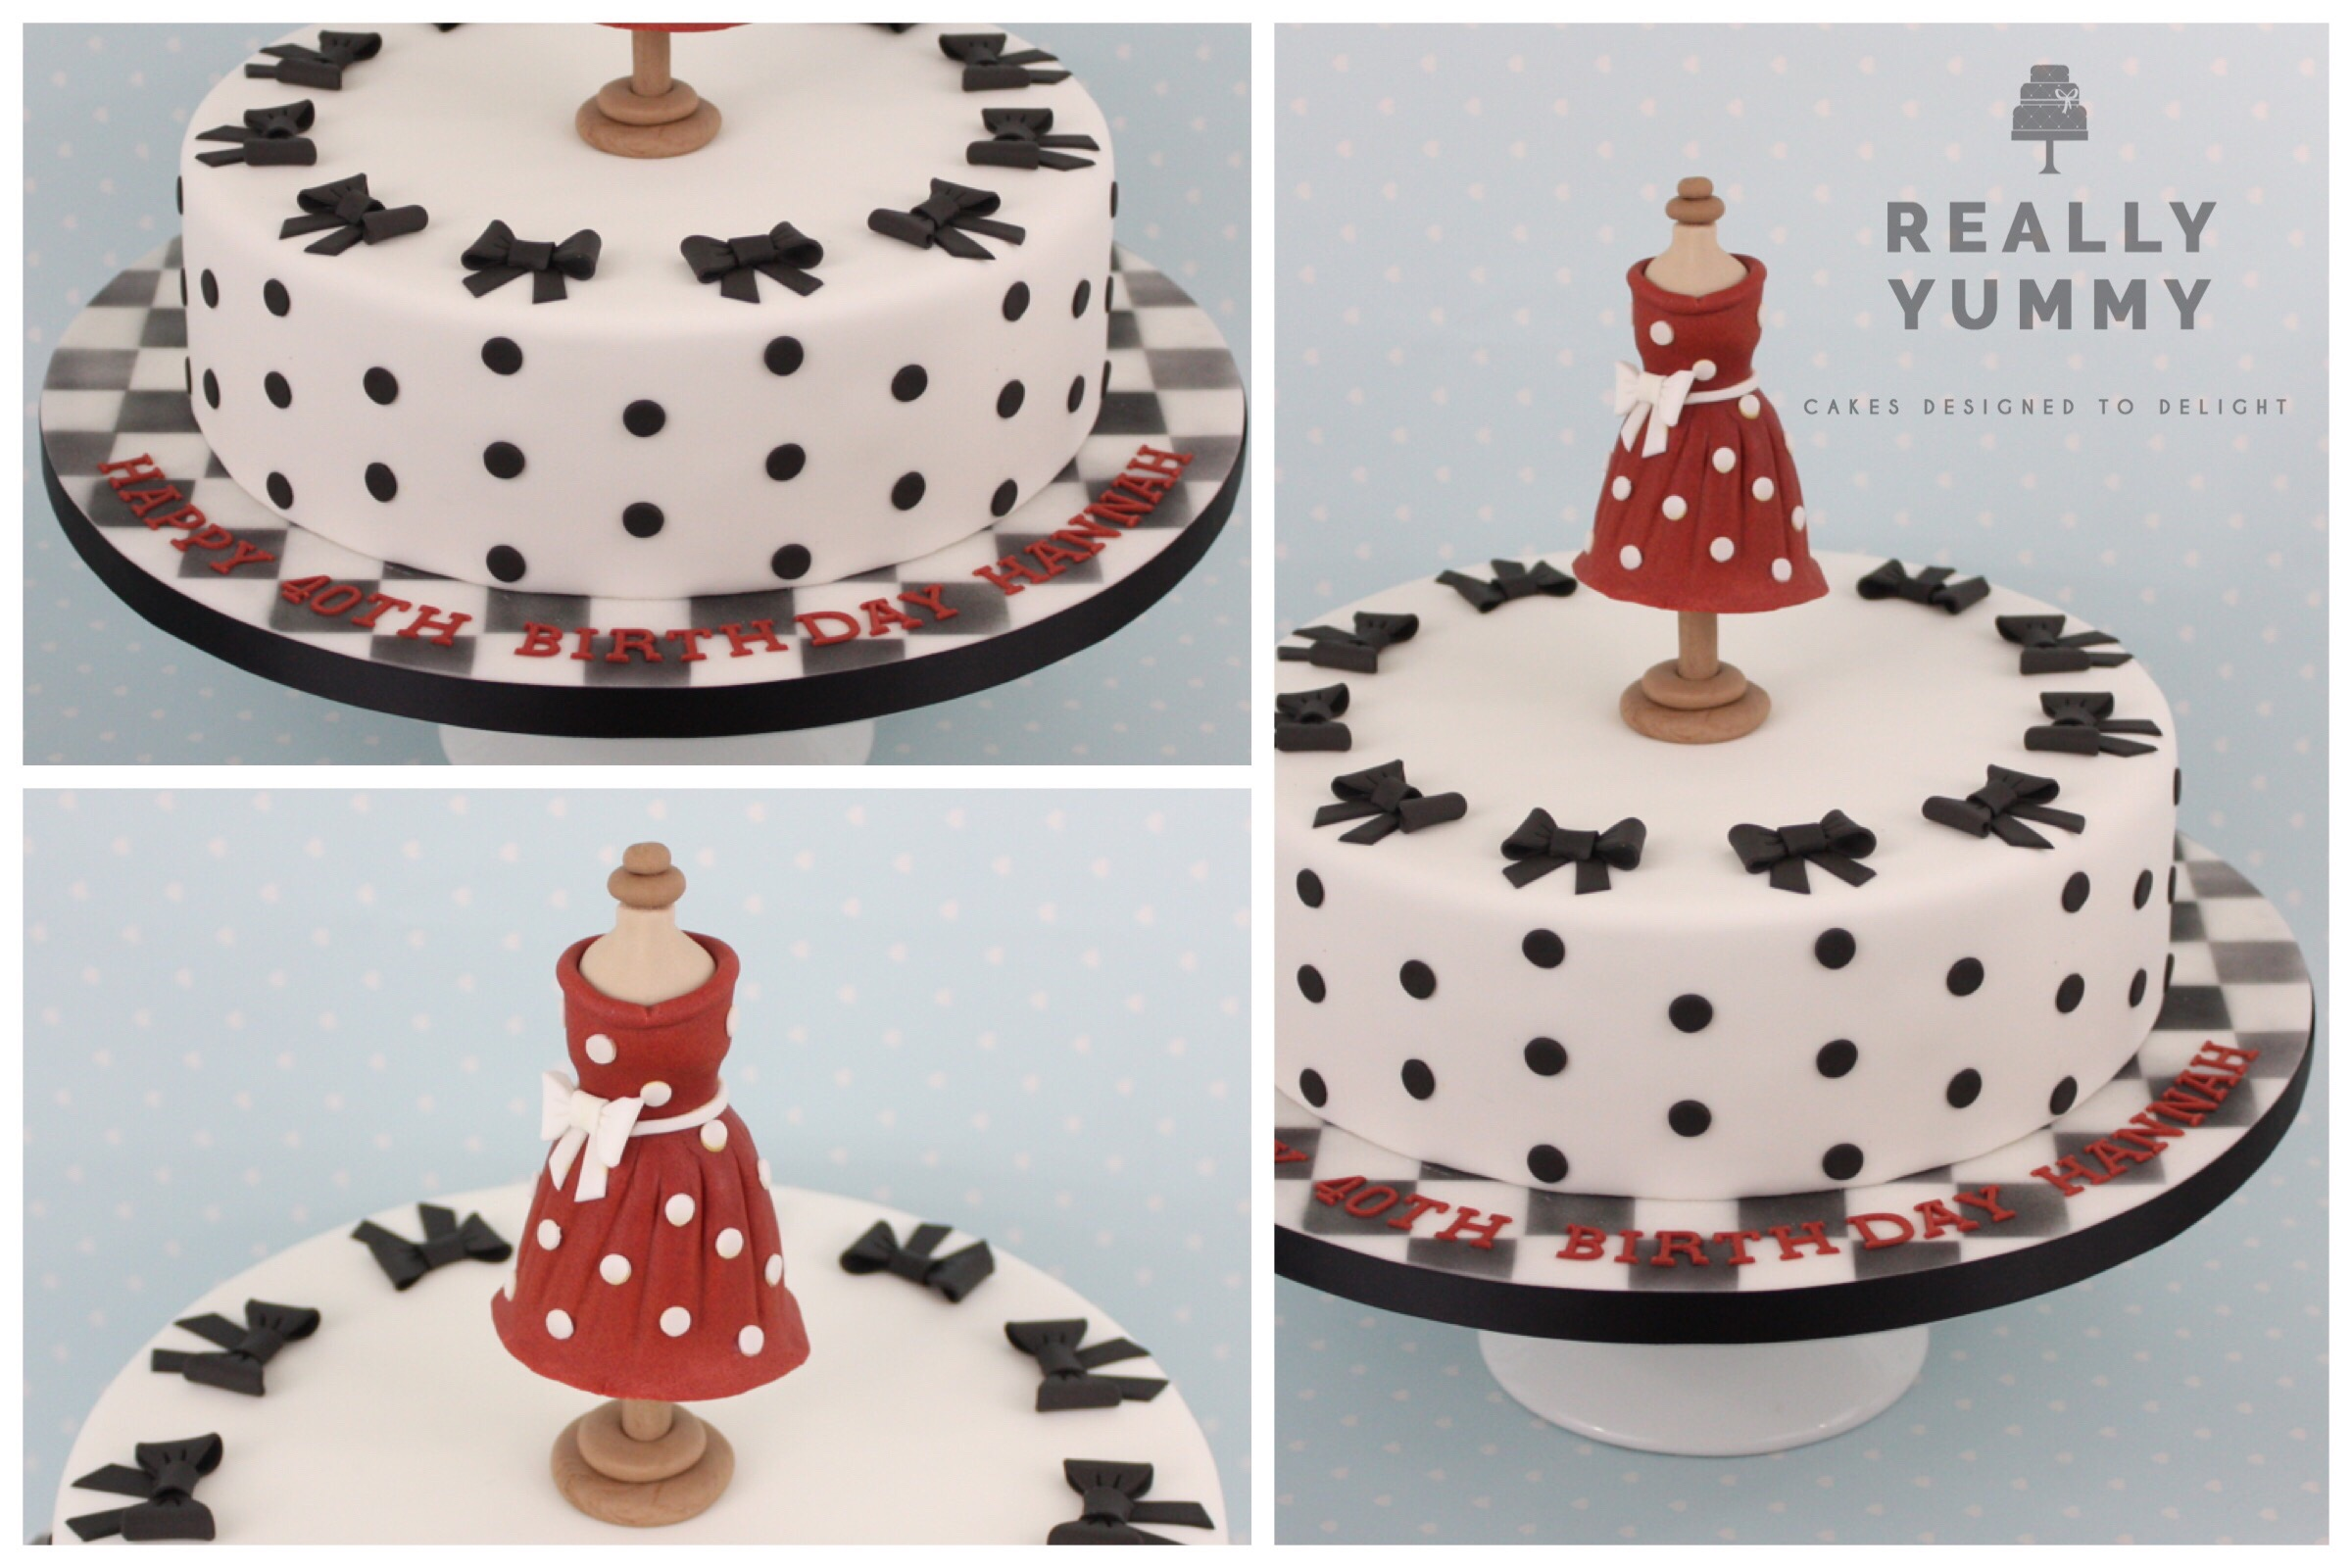 Retro dressmaker's dummy cake, with polka dots and bows